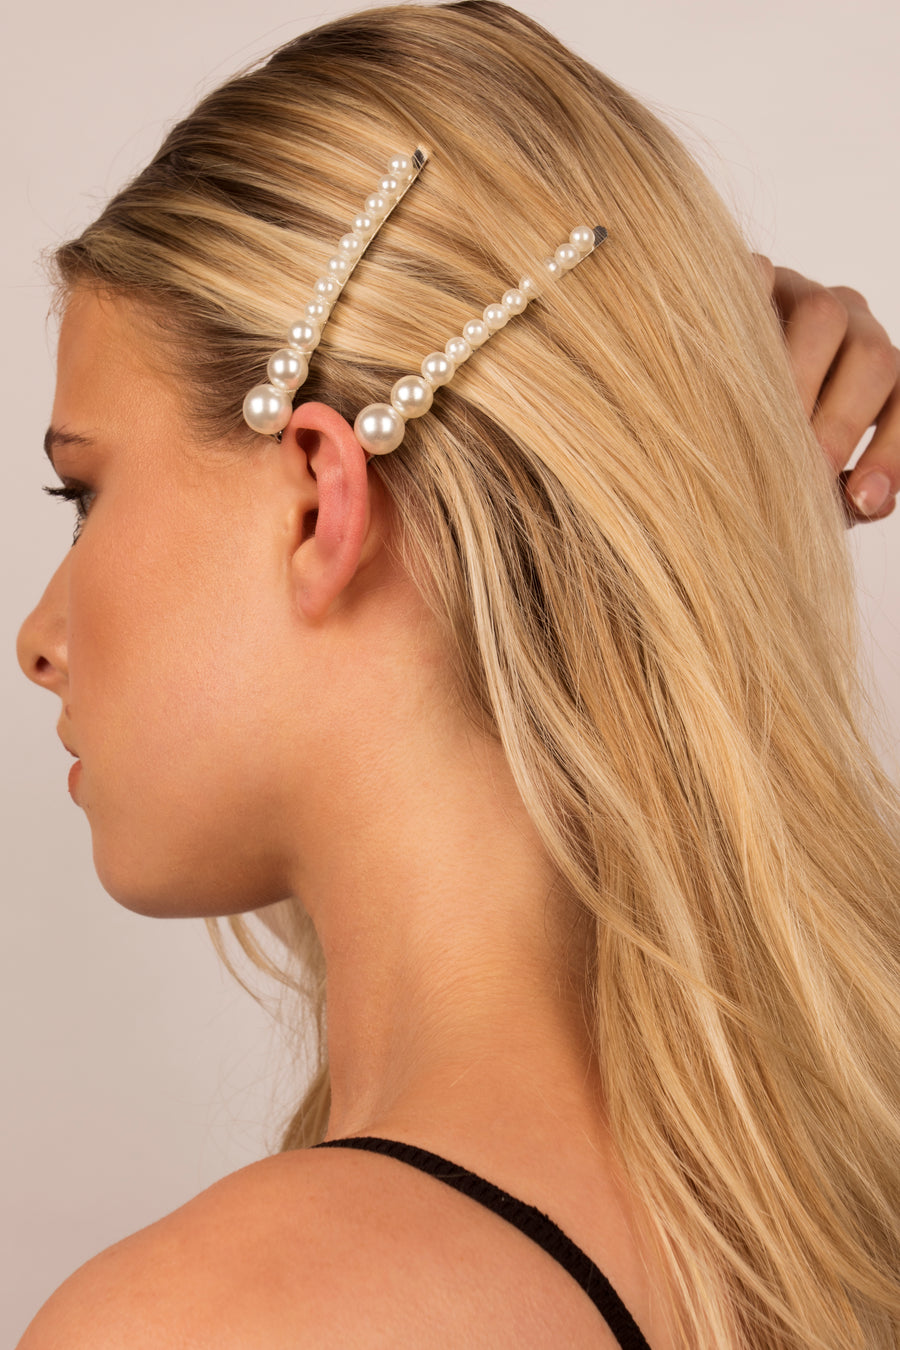 The LEEA Hair Slide